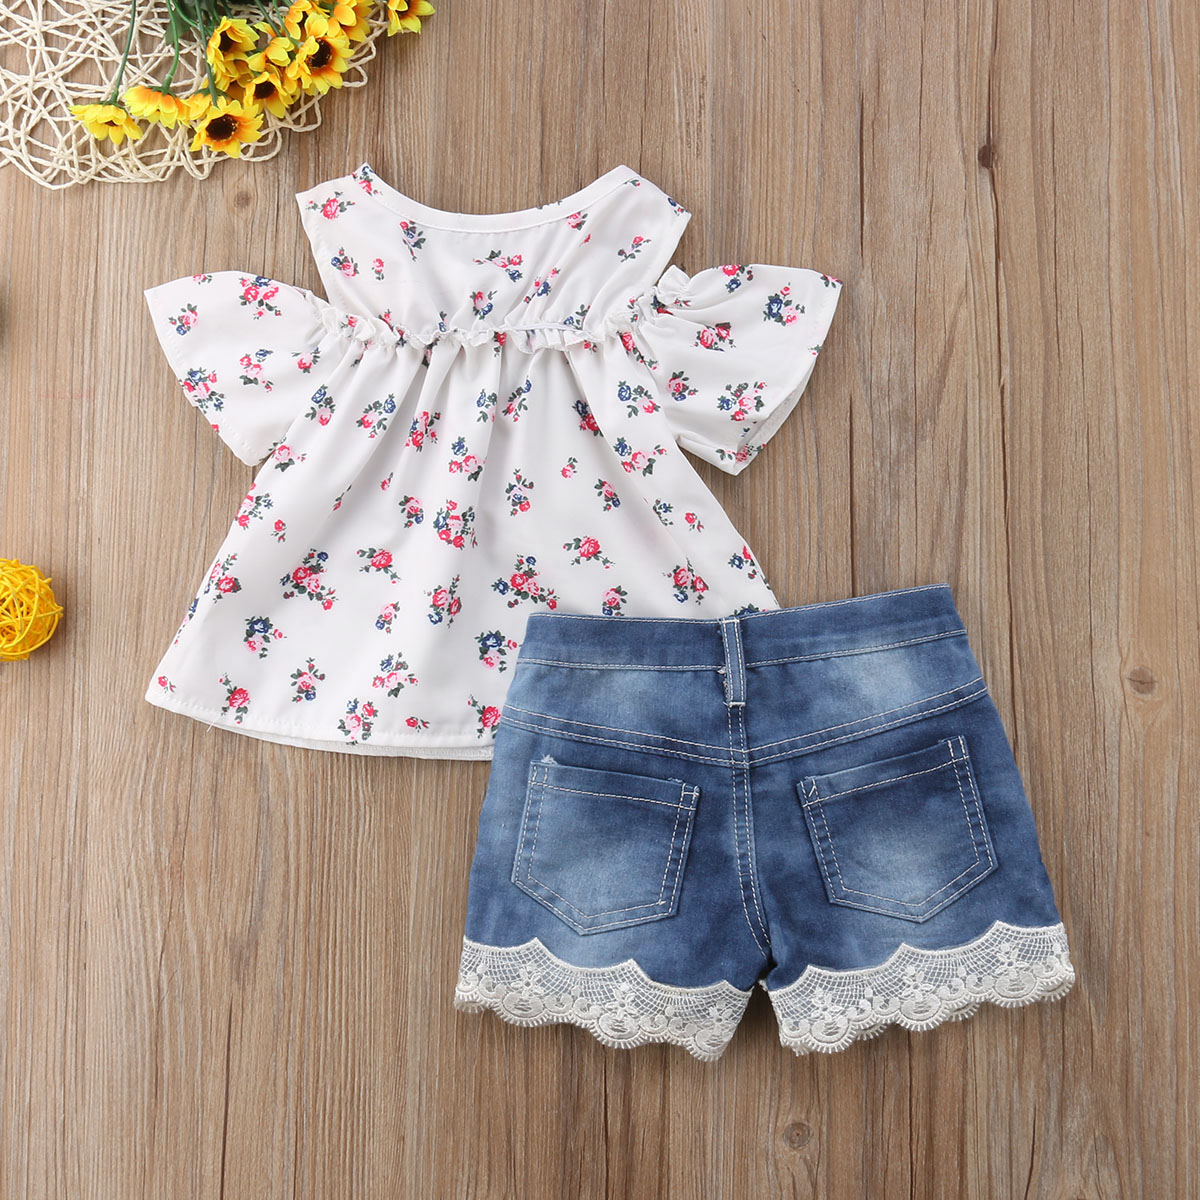 Kids 2Pcs Baby Girl Off Shoulder Rose Flower White Top Jeans Shorts Outfit